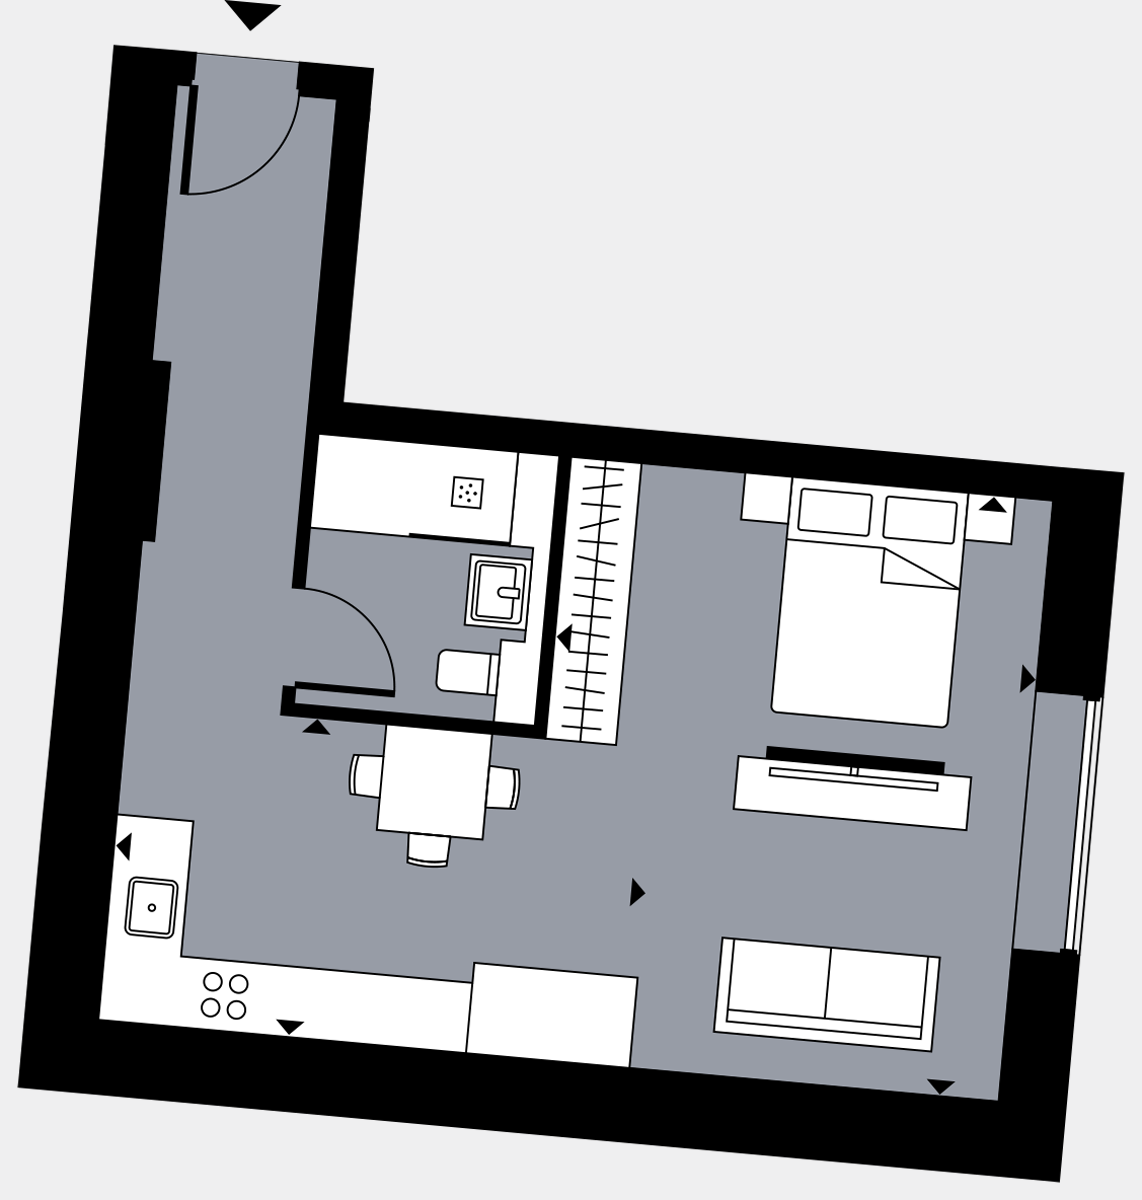 Brigade Court London SE1 Apartment floorplan - L2 19 Davies House